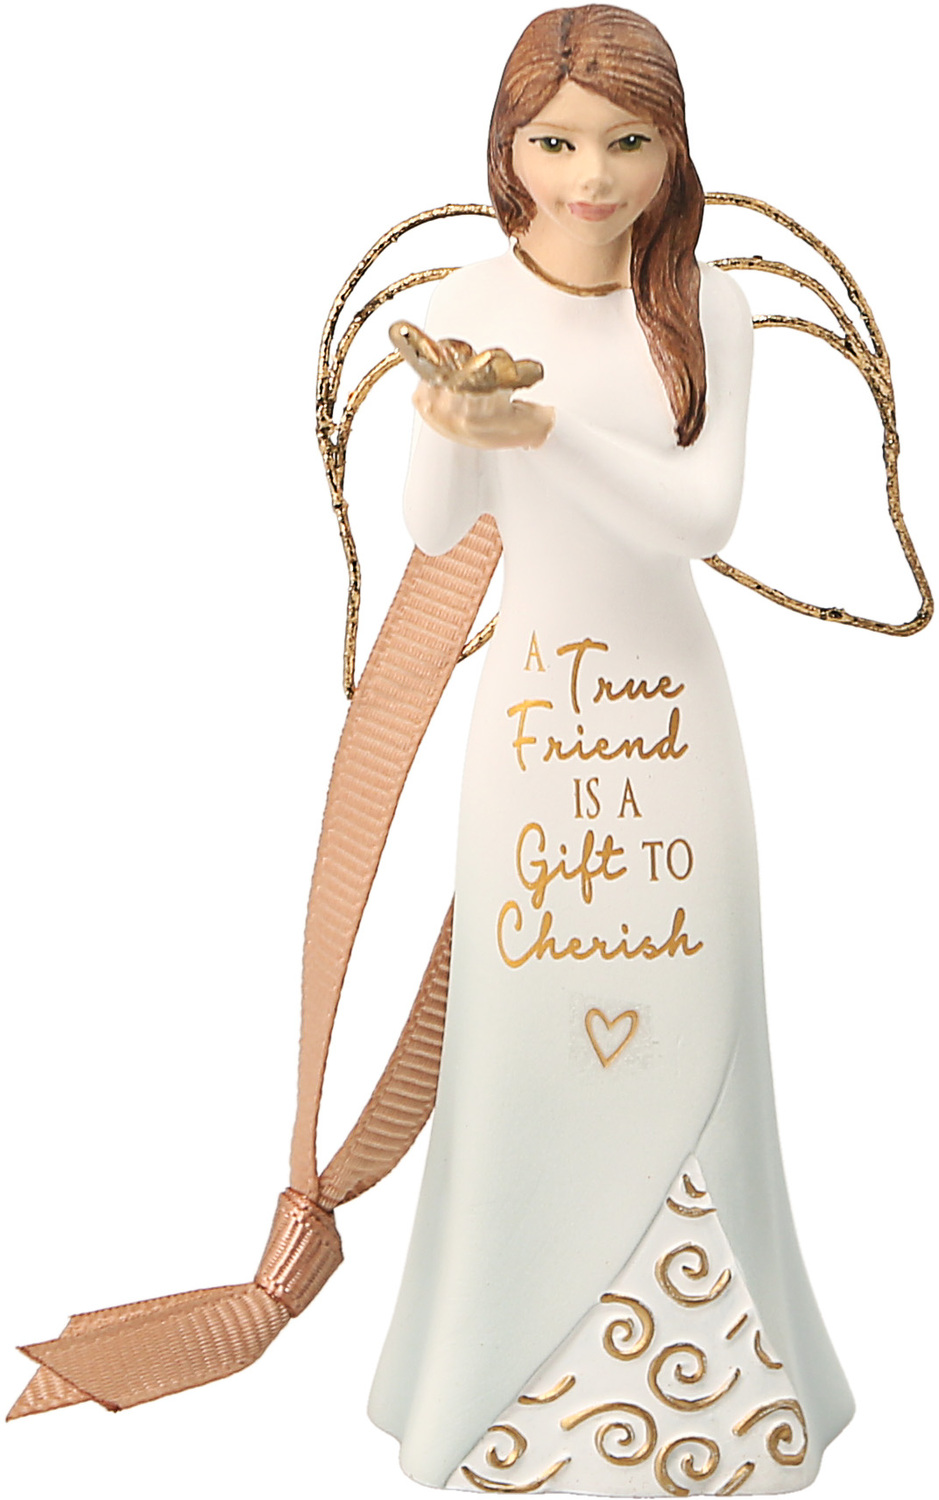 "Friend by Comfort Collection - Friend - 4.5"" Angel Ornament"